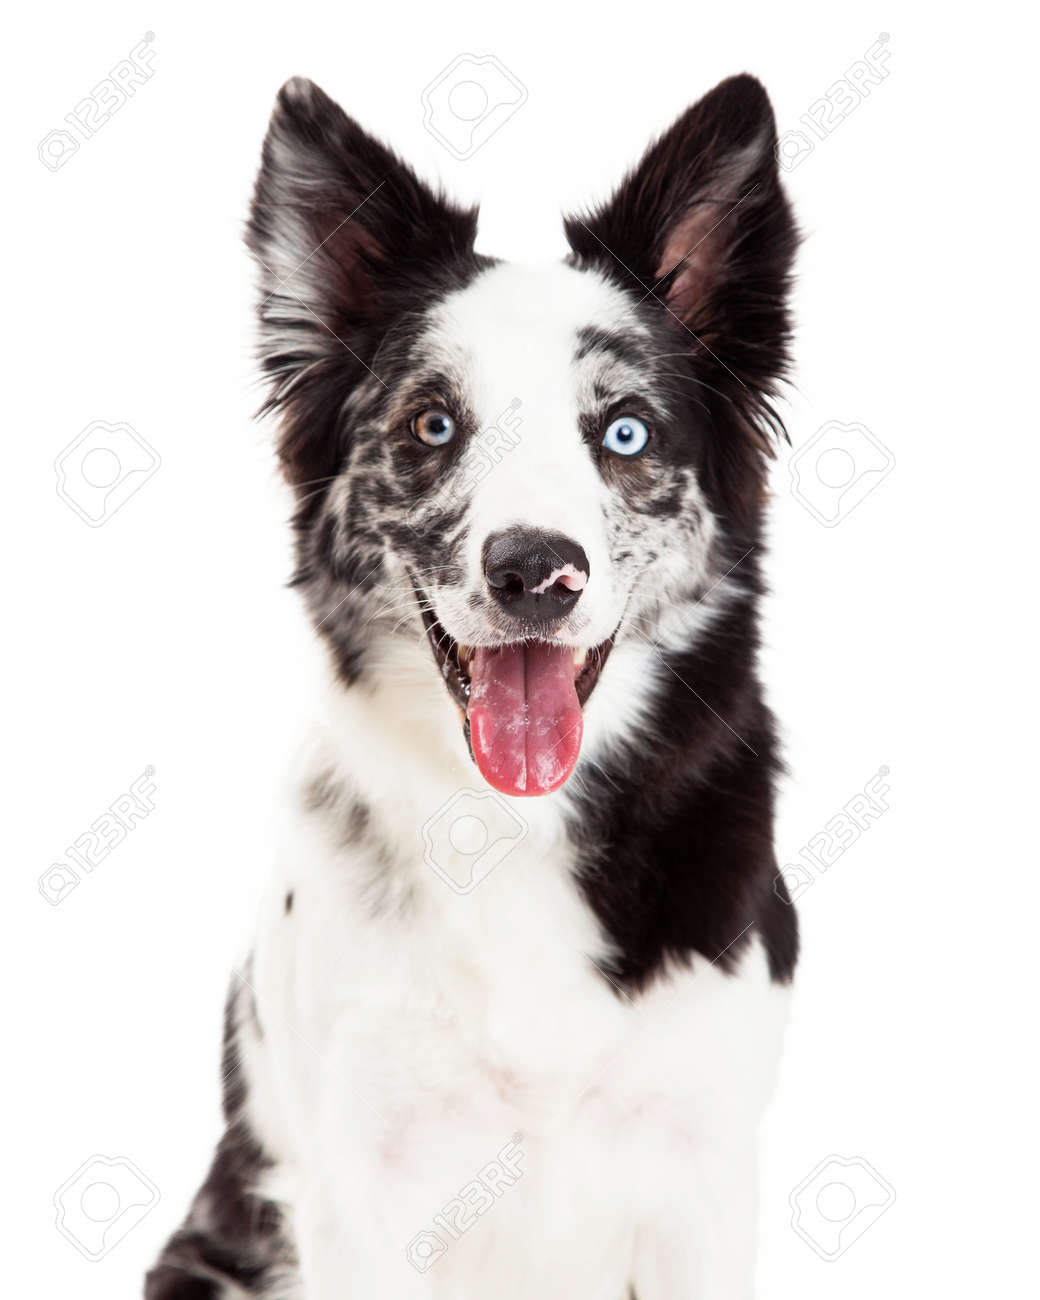 close up of a pretty border collie dog with spotted fur and blue